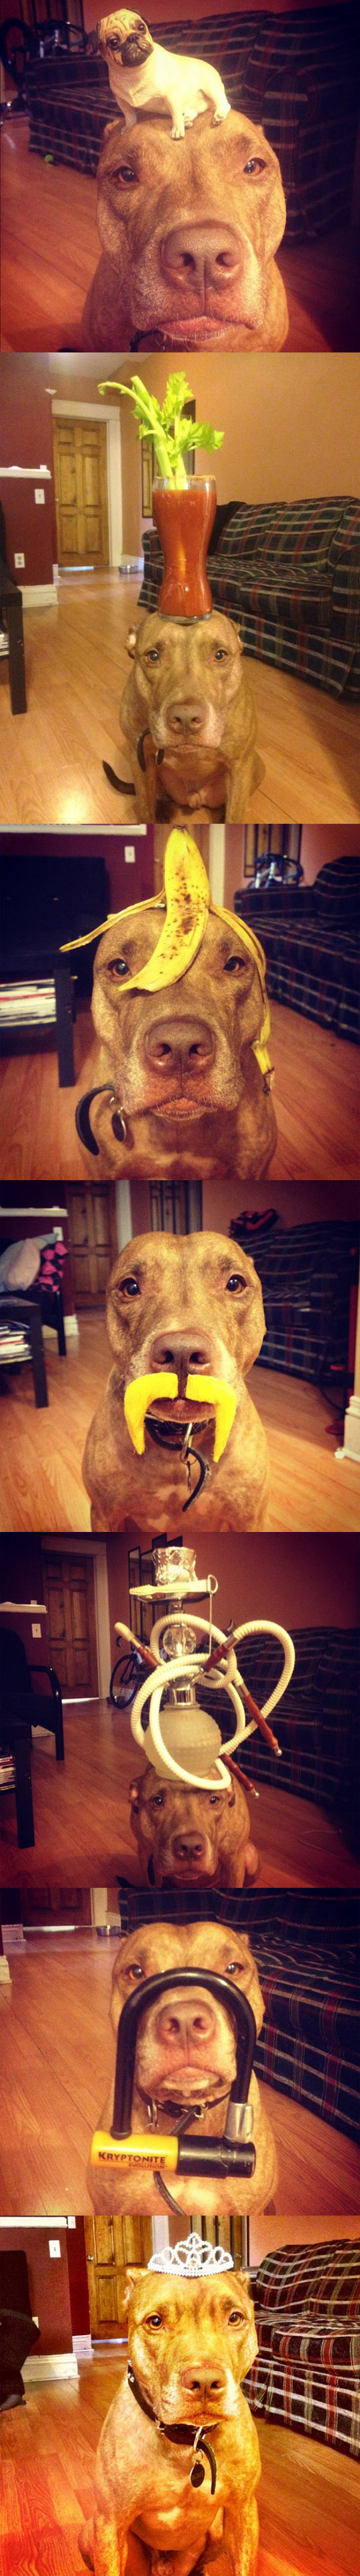 funny-dog-disguise-food-balance-hat